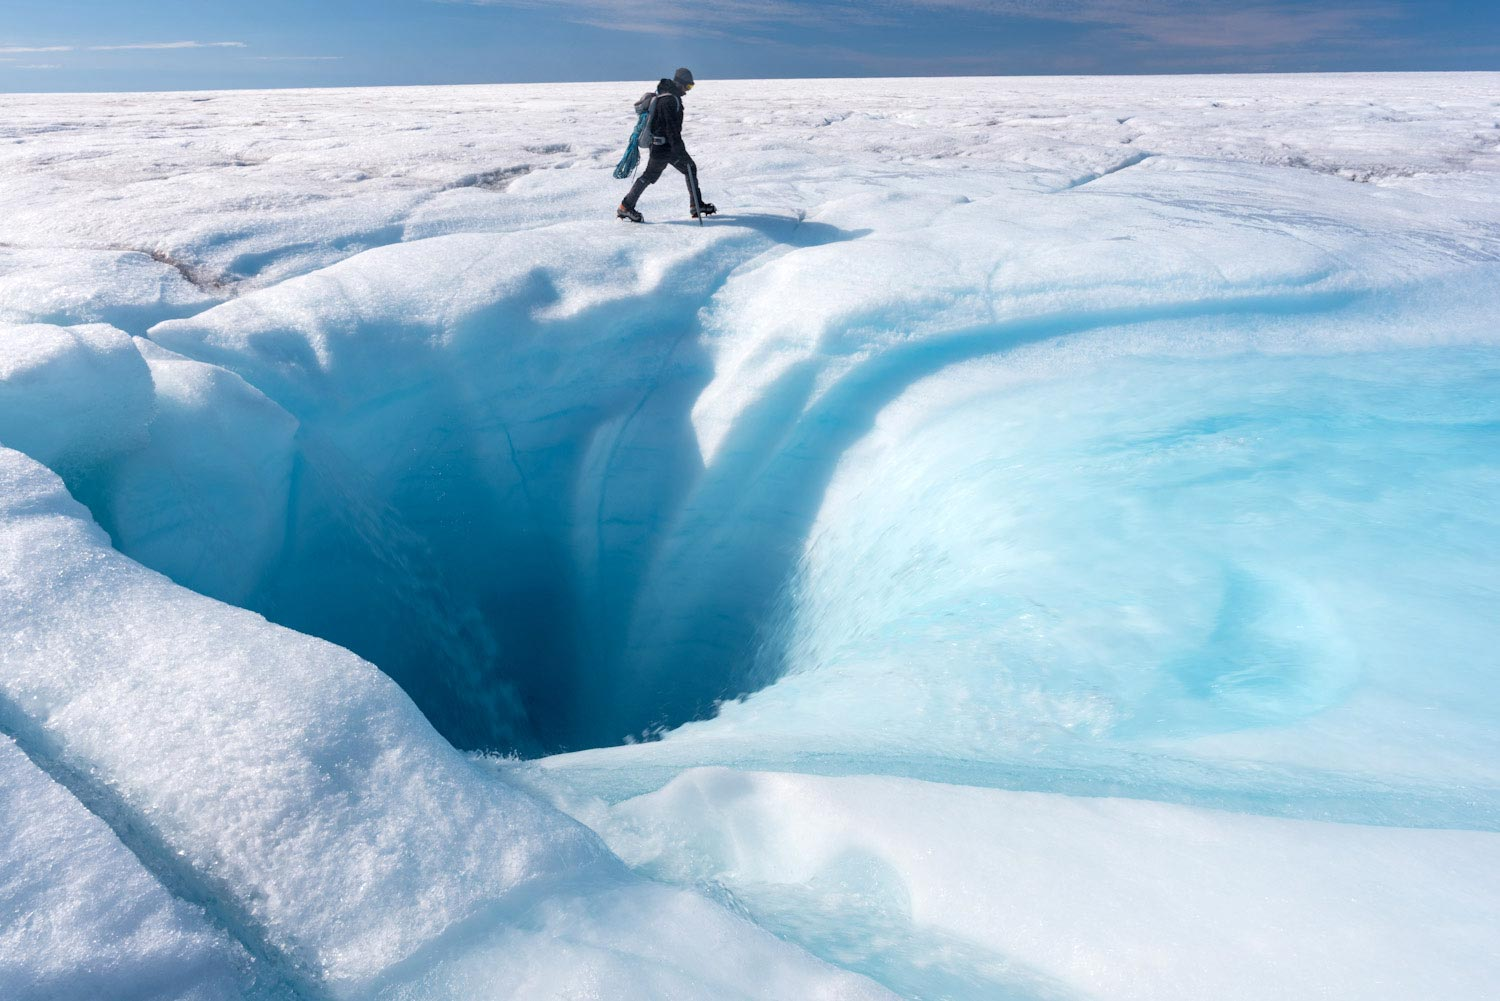 Researchers Investigate Giant Holes in Greenland Ice Sheet - SciTechDaily